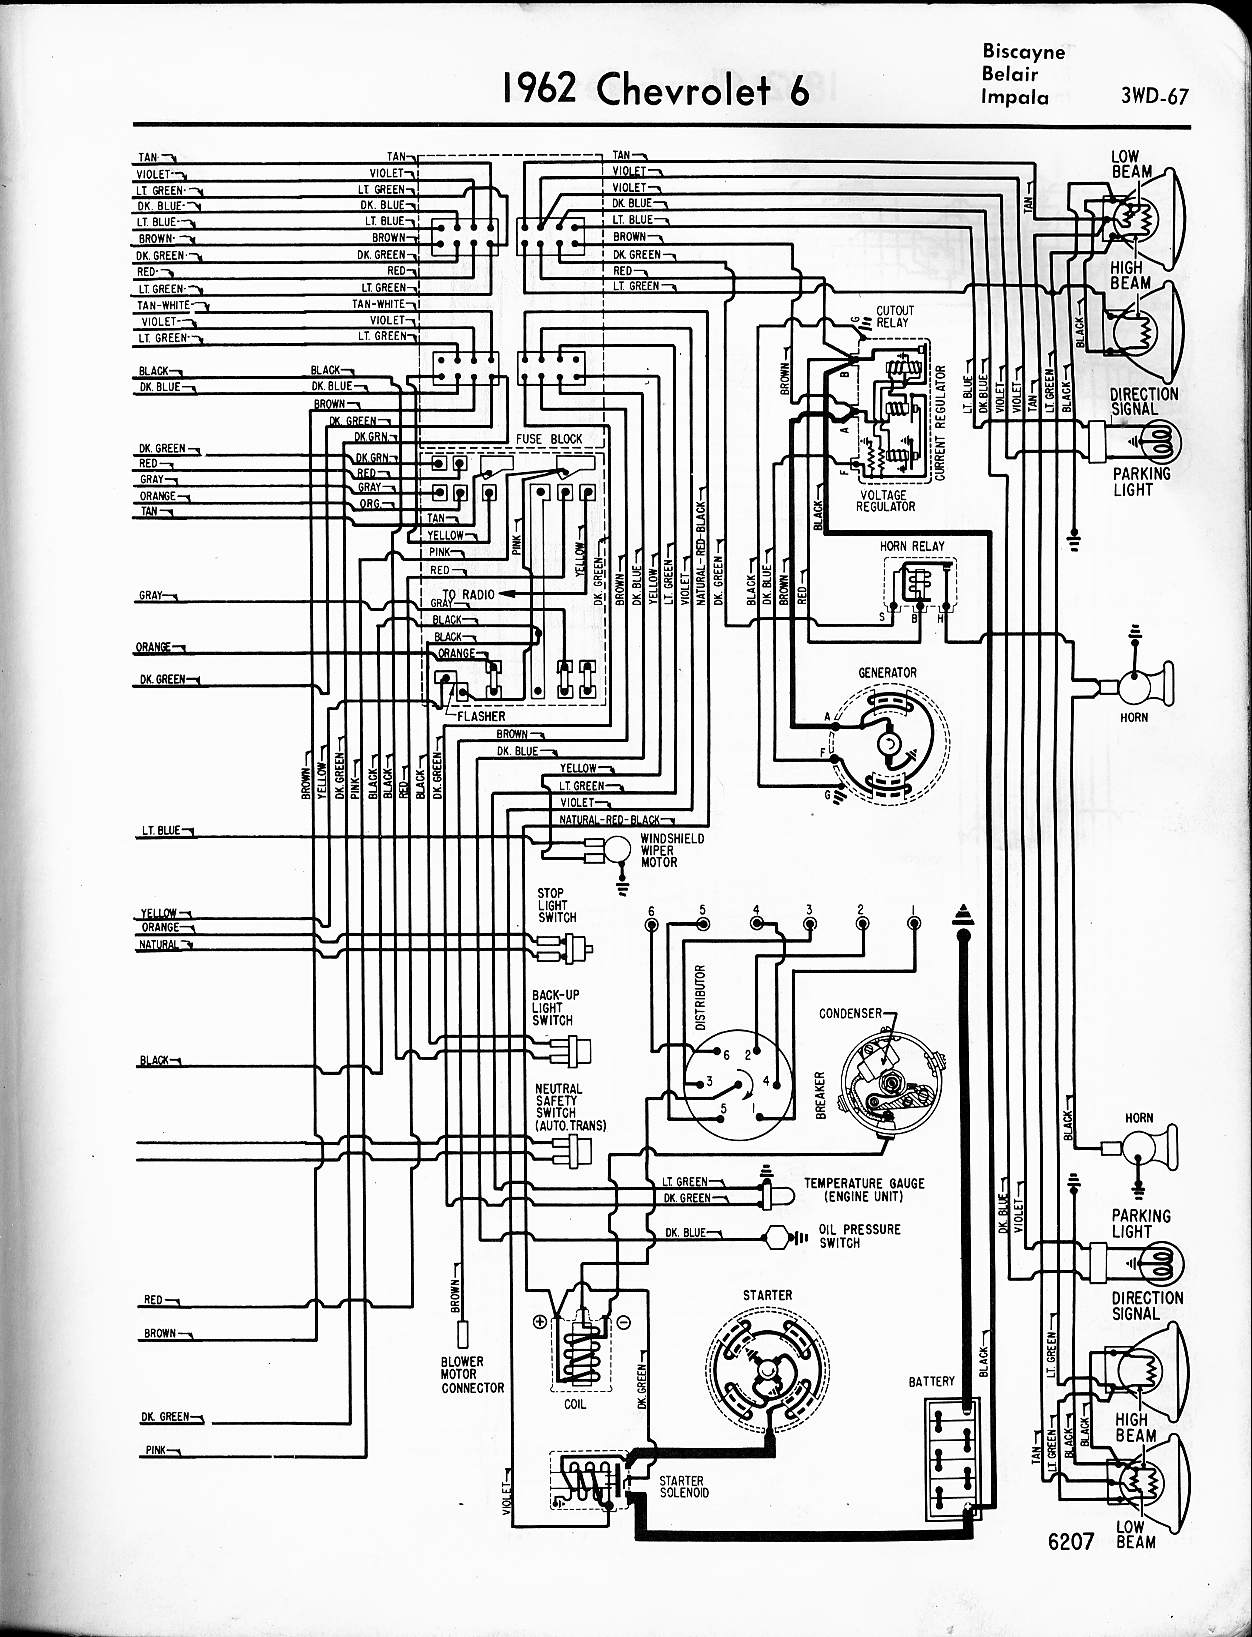 1962 chevy biscayne battery wiring custom wiring diagram u2022 rh littlewaves co